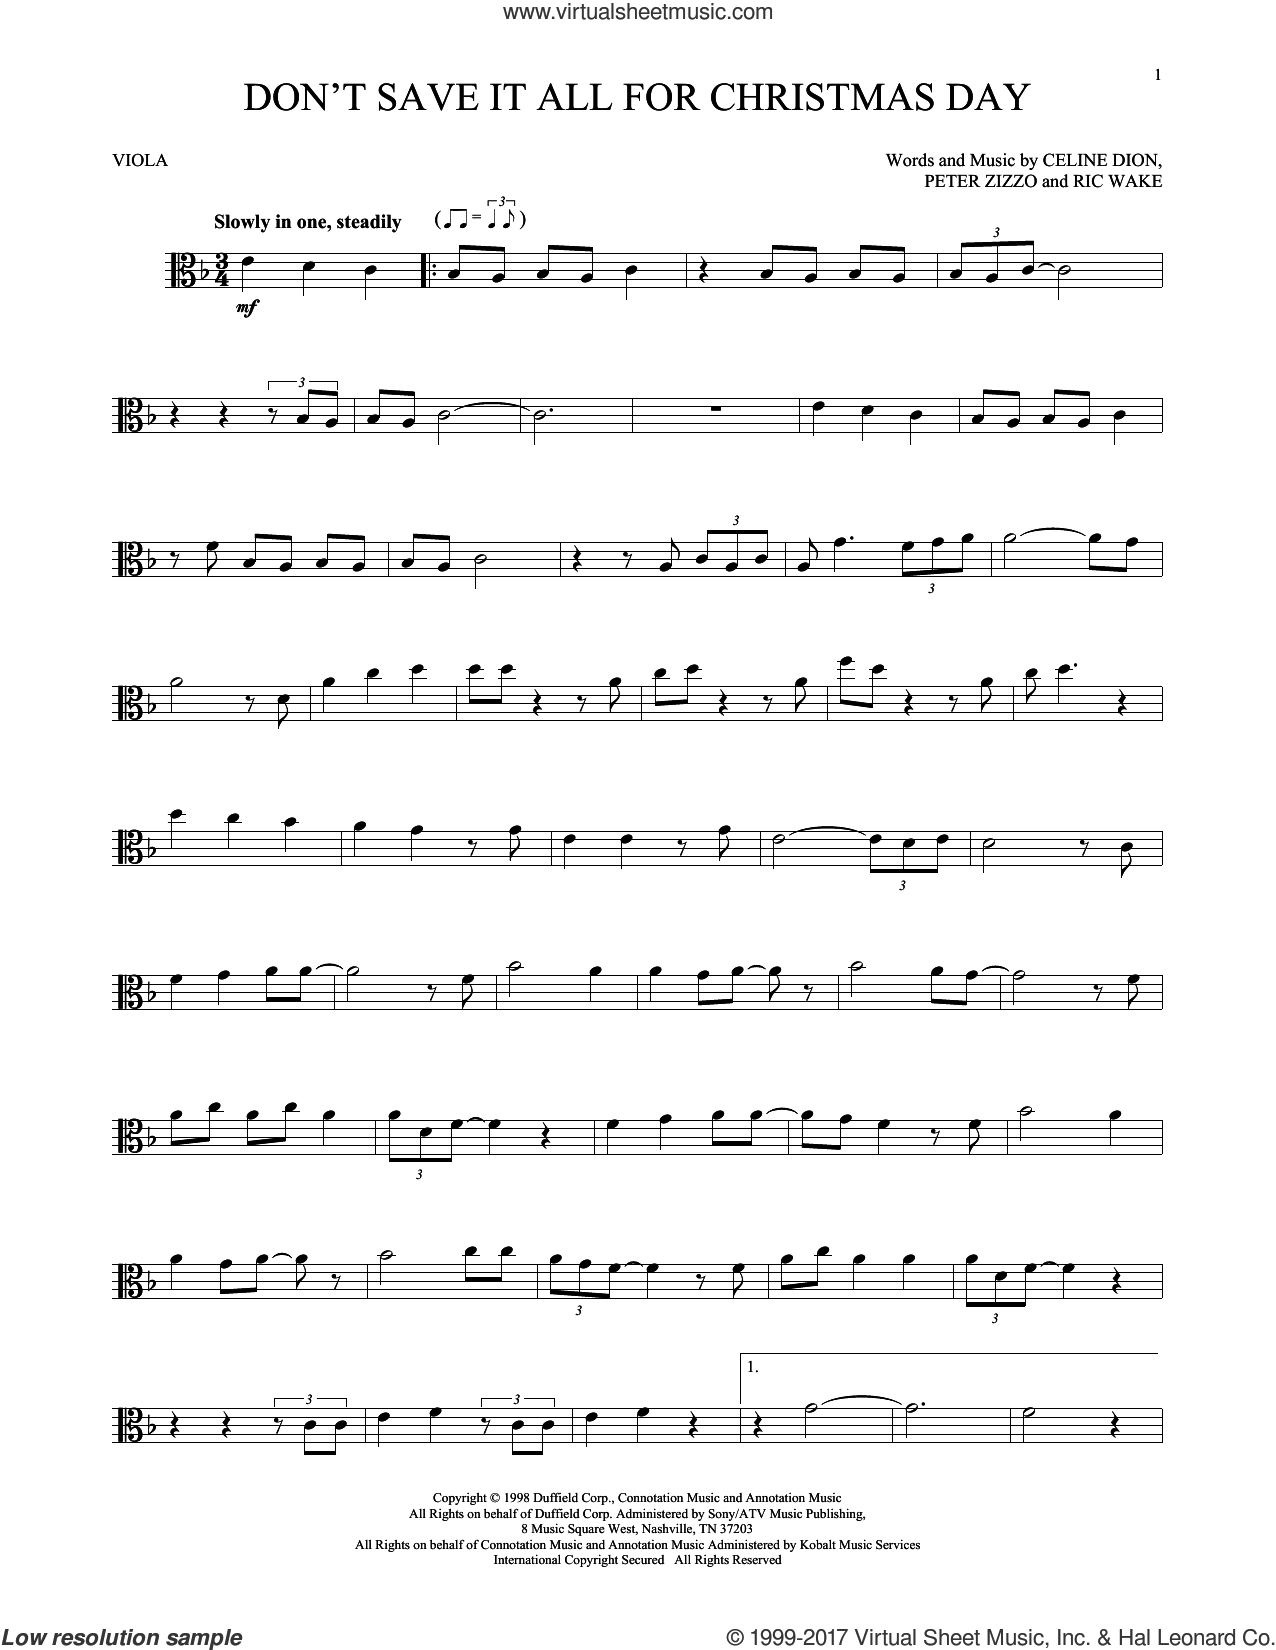 Don't Save It All For Christmas Day sheet music for viola solo by Celine Dion, Peter Zizzo and Ric Wake, intermediate skill level